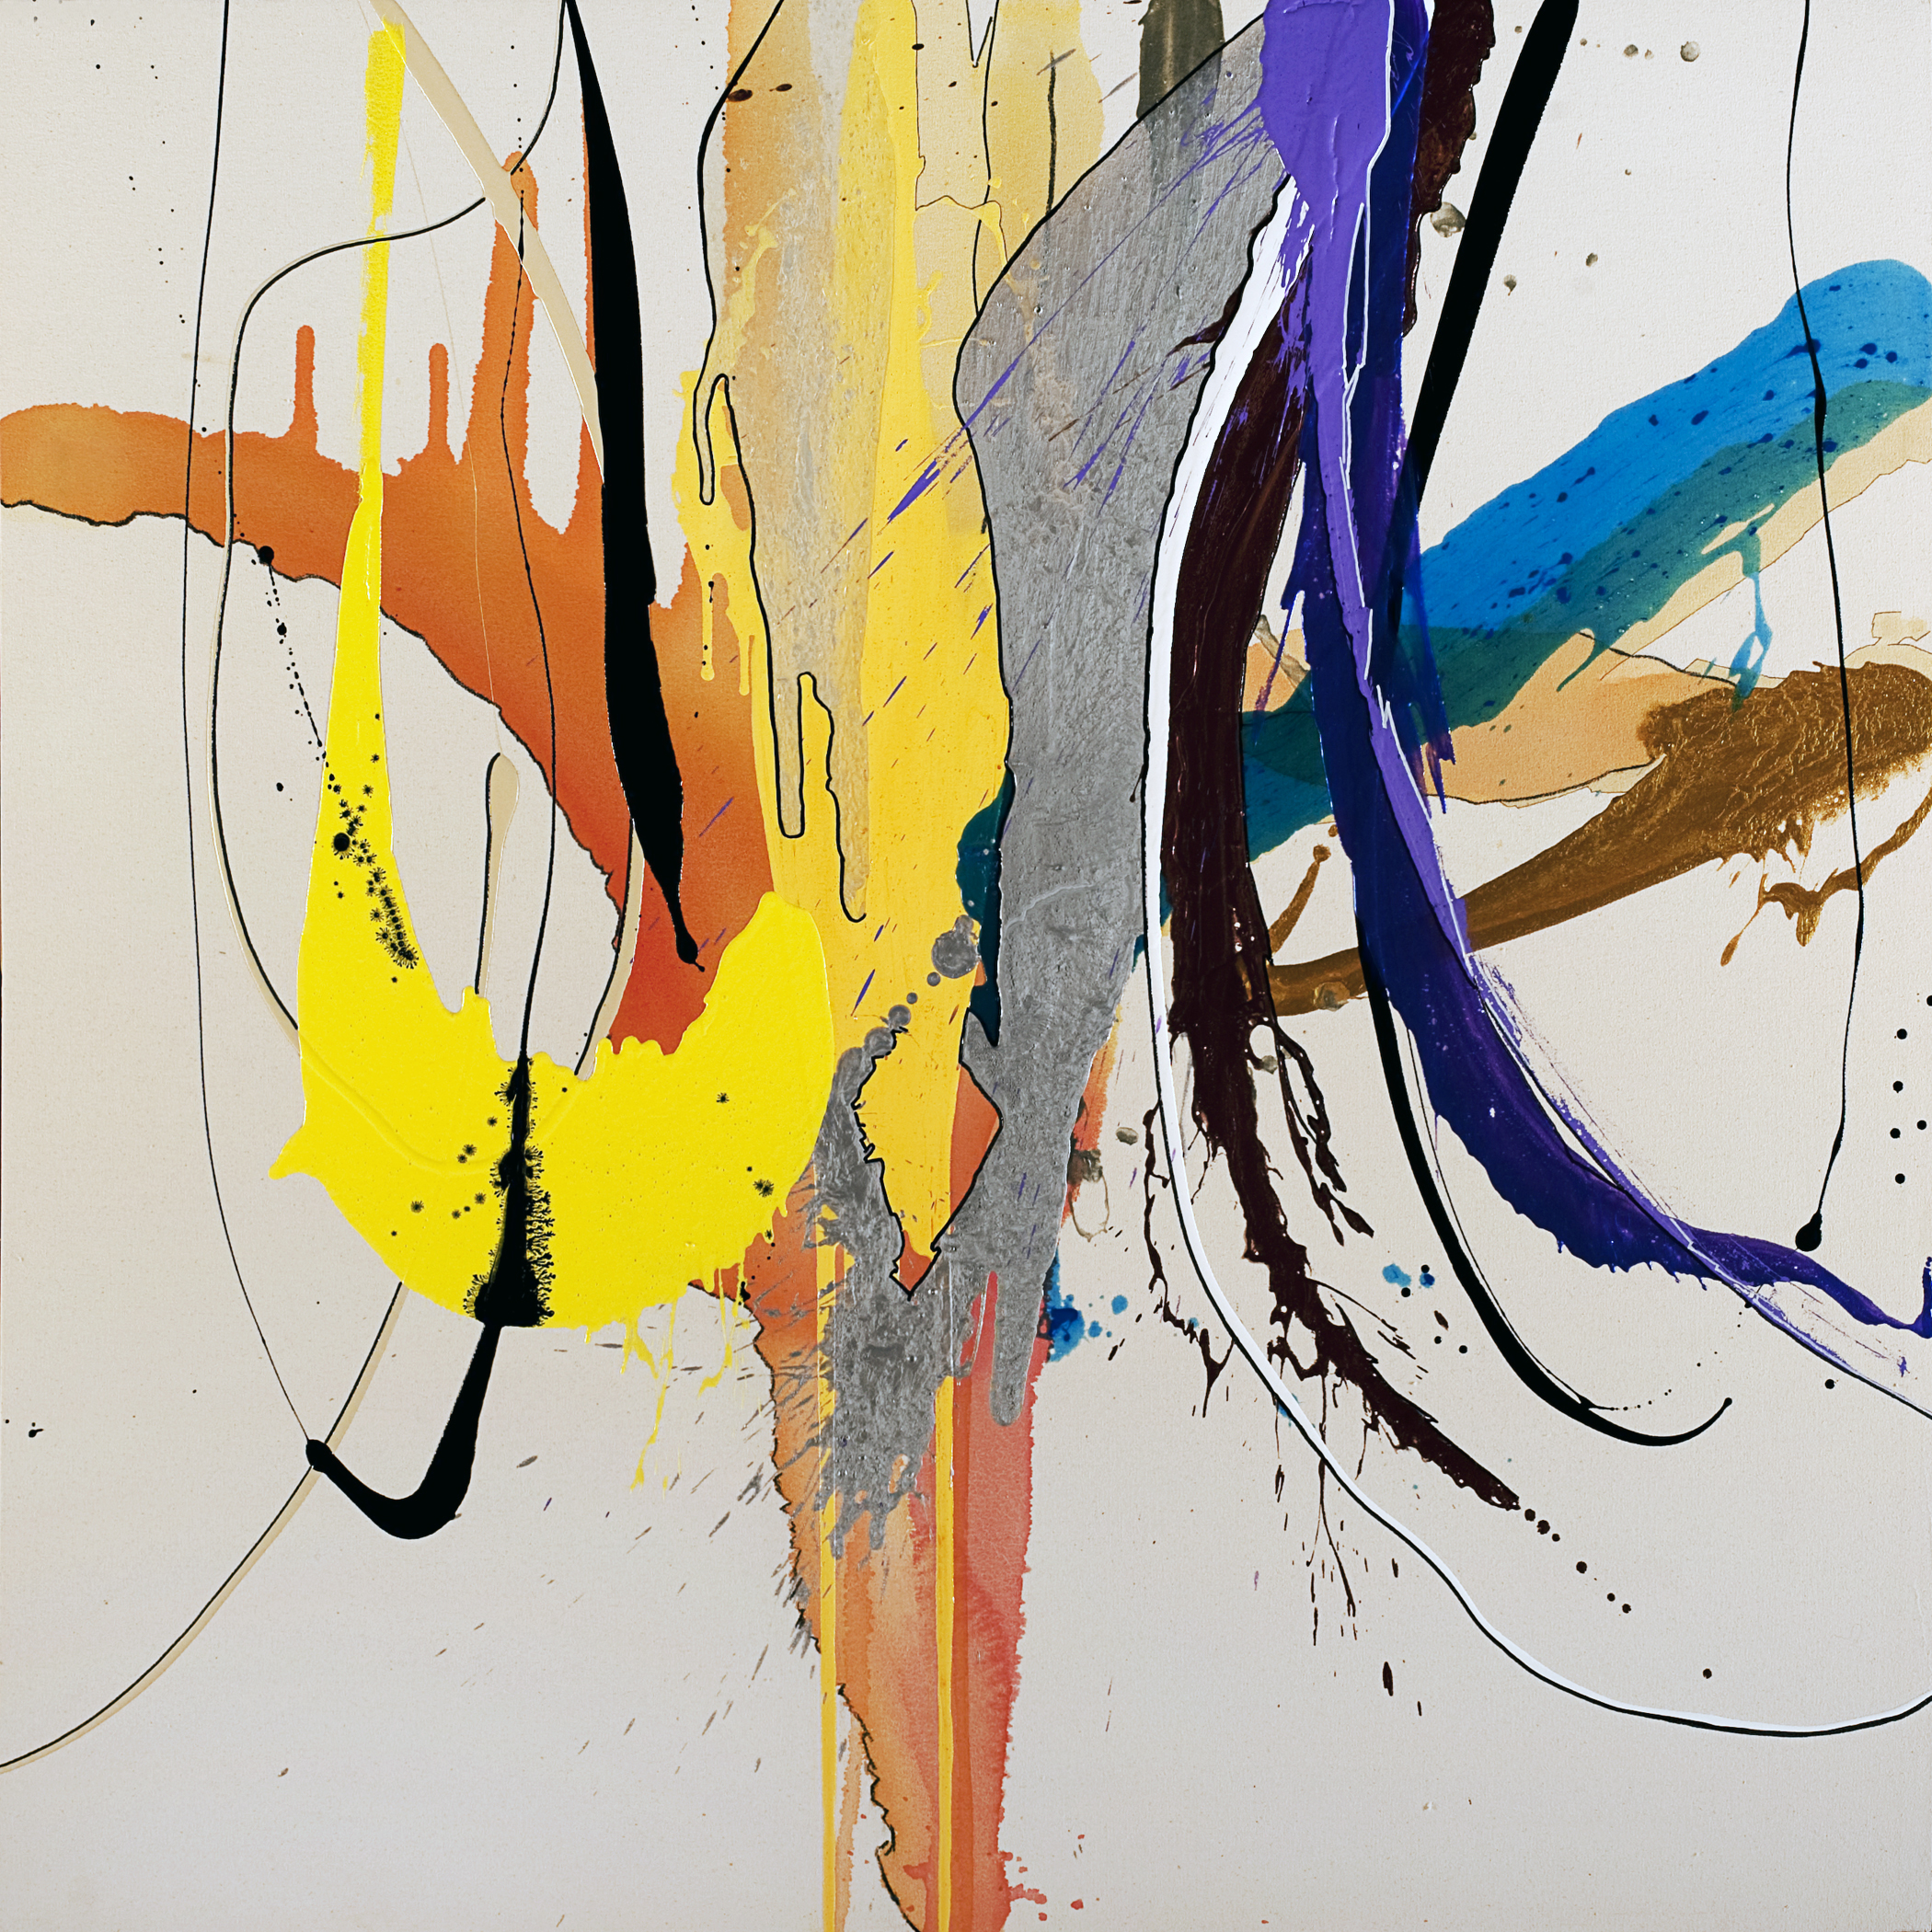 """Dripping in Gold,  2013 - SOLD   48 x 48 x 3""""  Acrylic, enamel, pastel, charcoal and marker on canvas"""